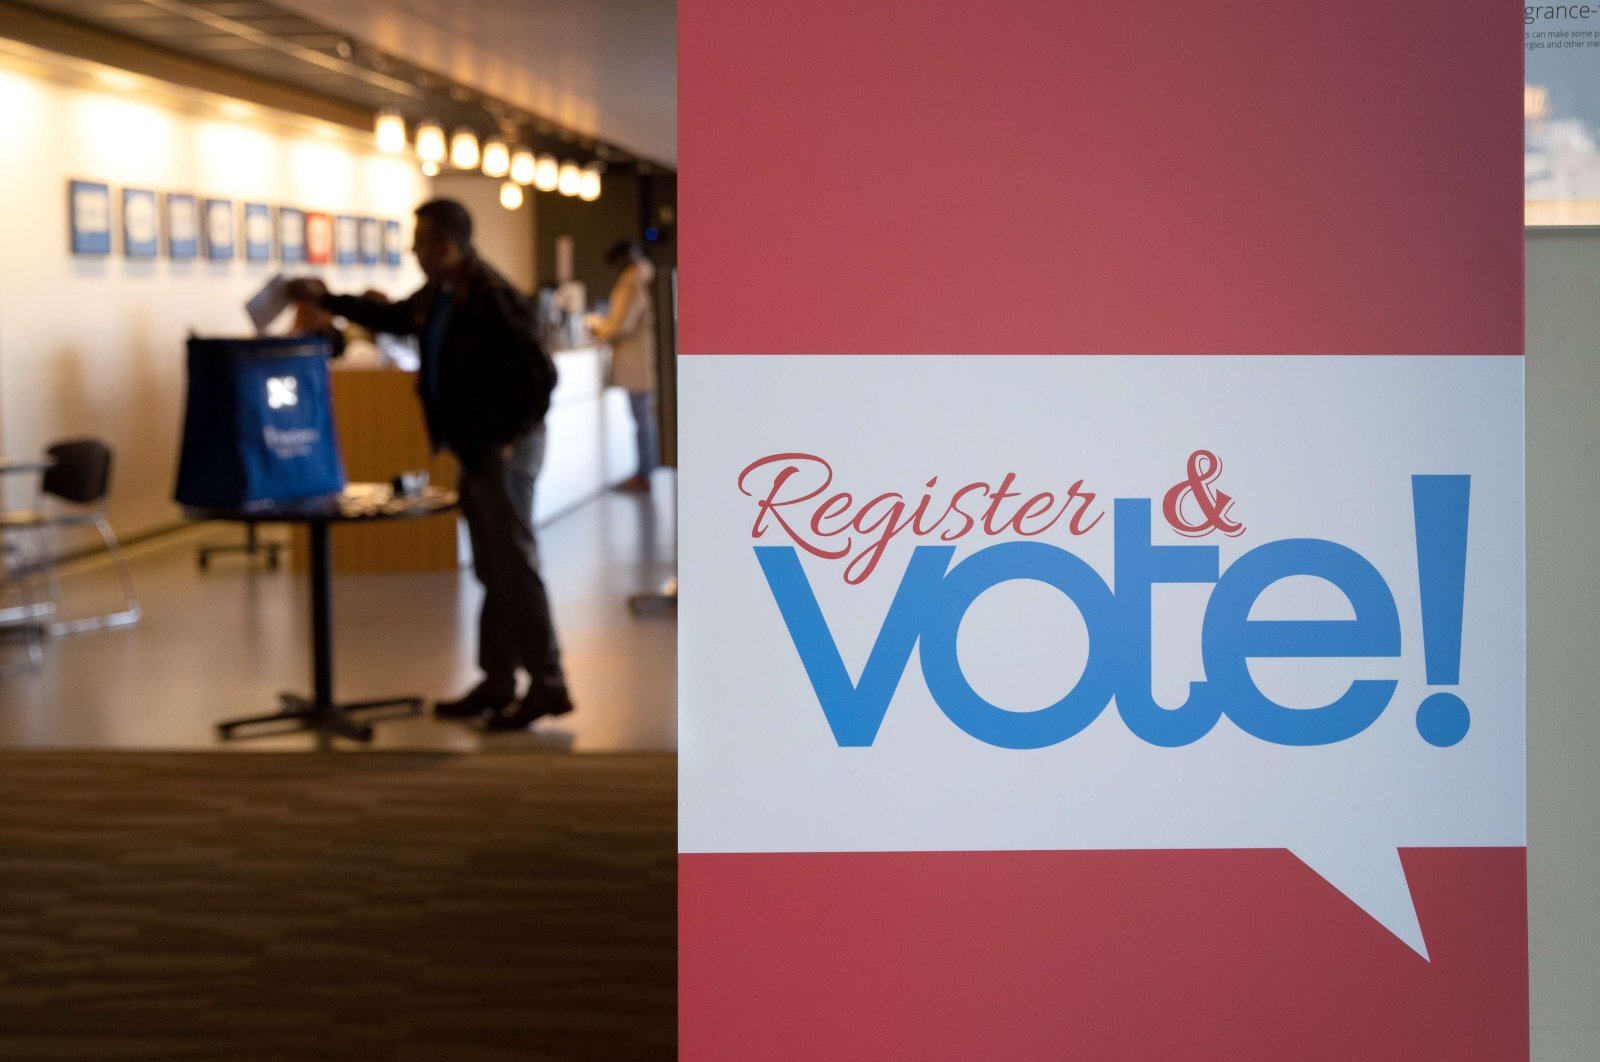 A voter casts his ballot at the King County Elections processing center, in Renton, Washington, Monday, March 9, 2020. (AFP Photo)